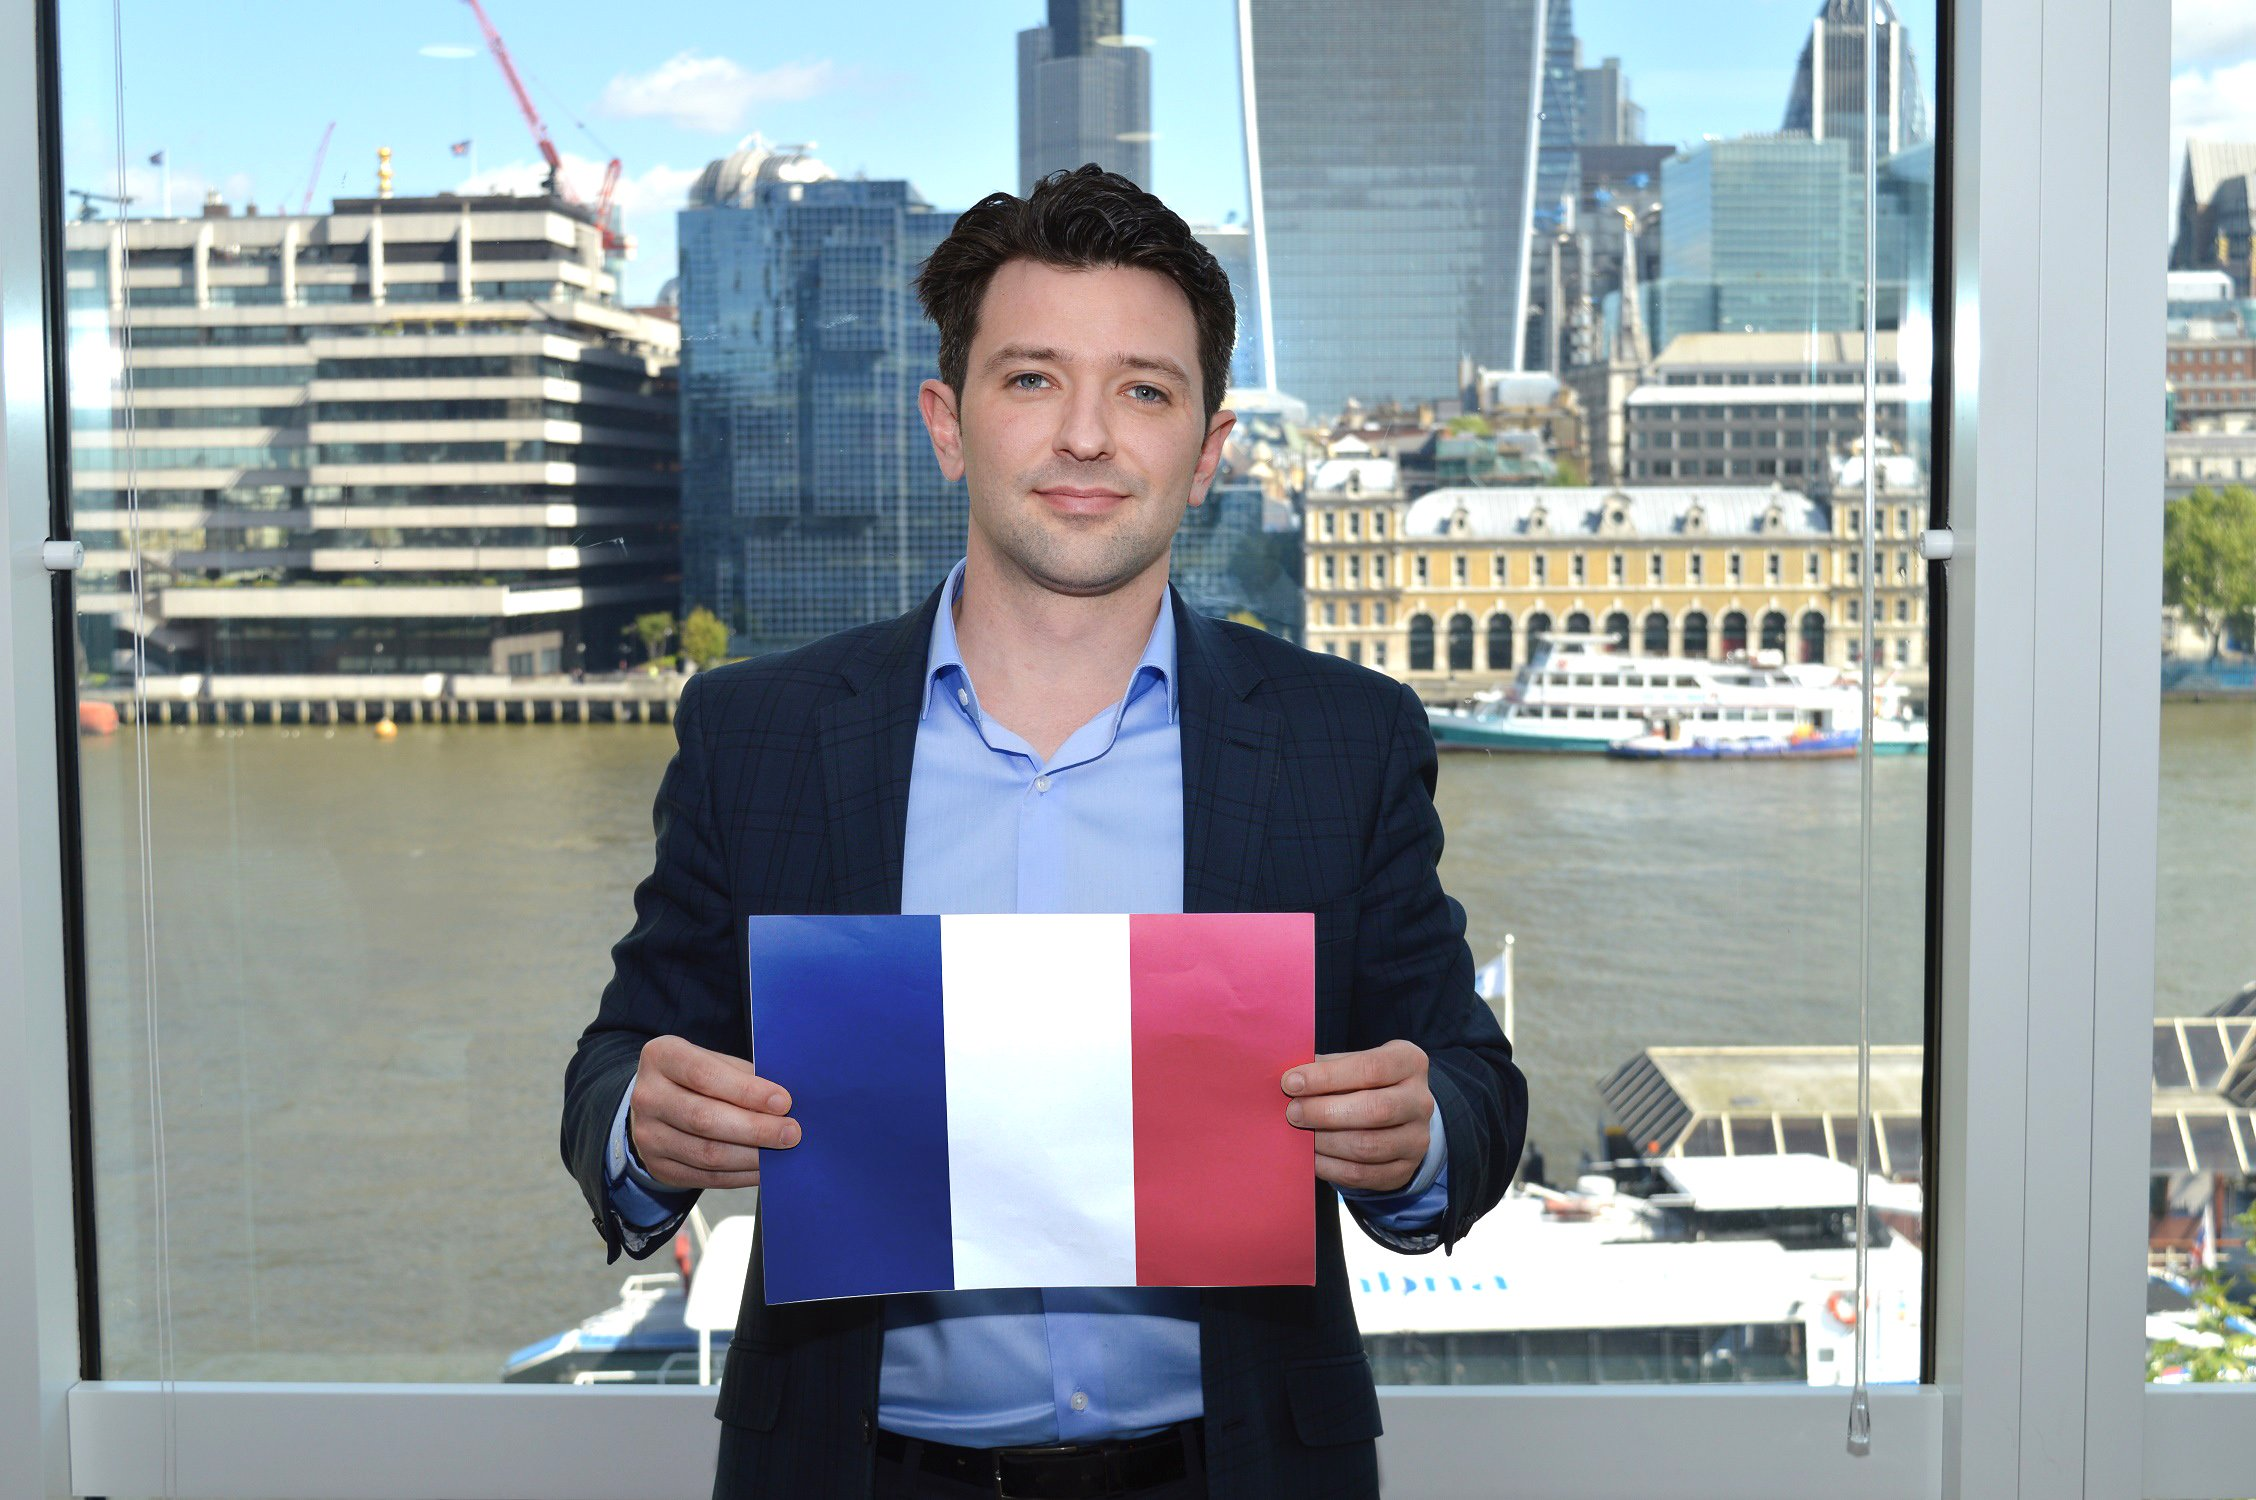 a male f.d.m. consultant holding a copy of the french flag